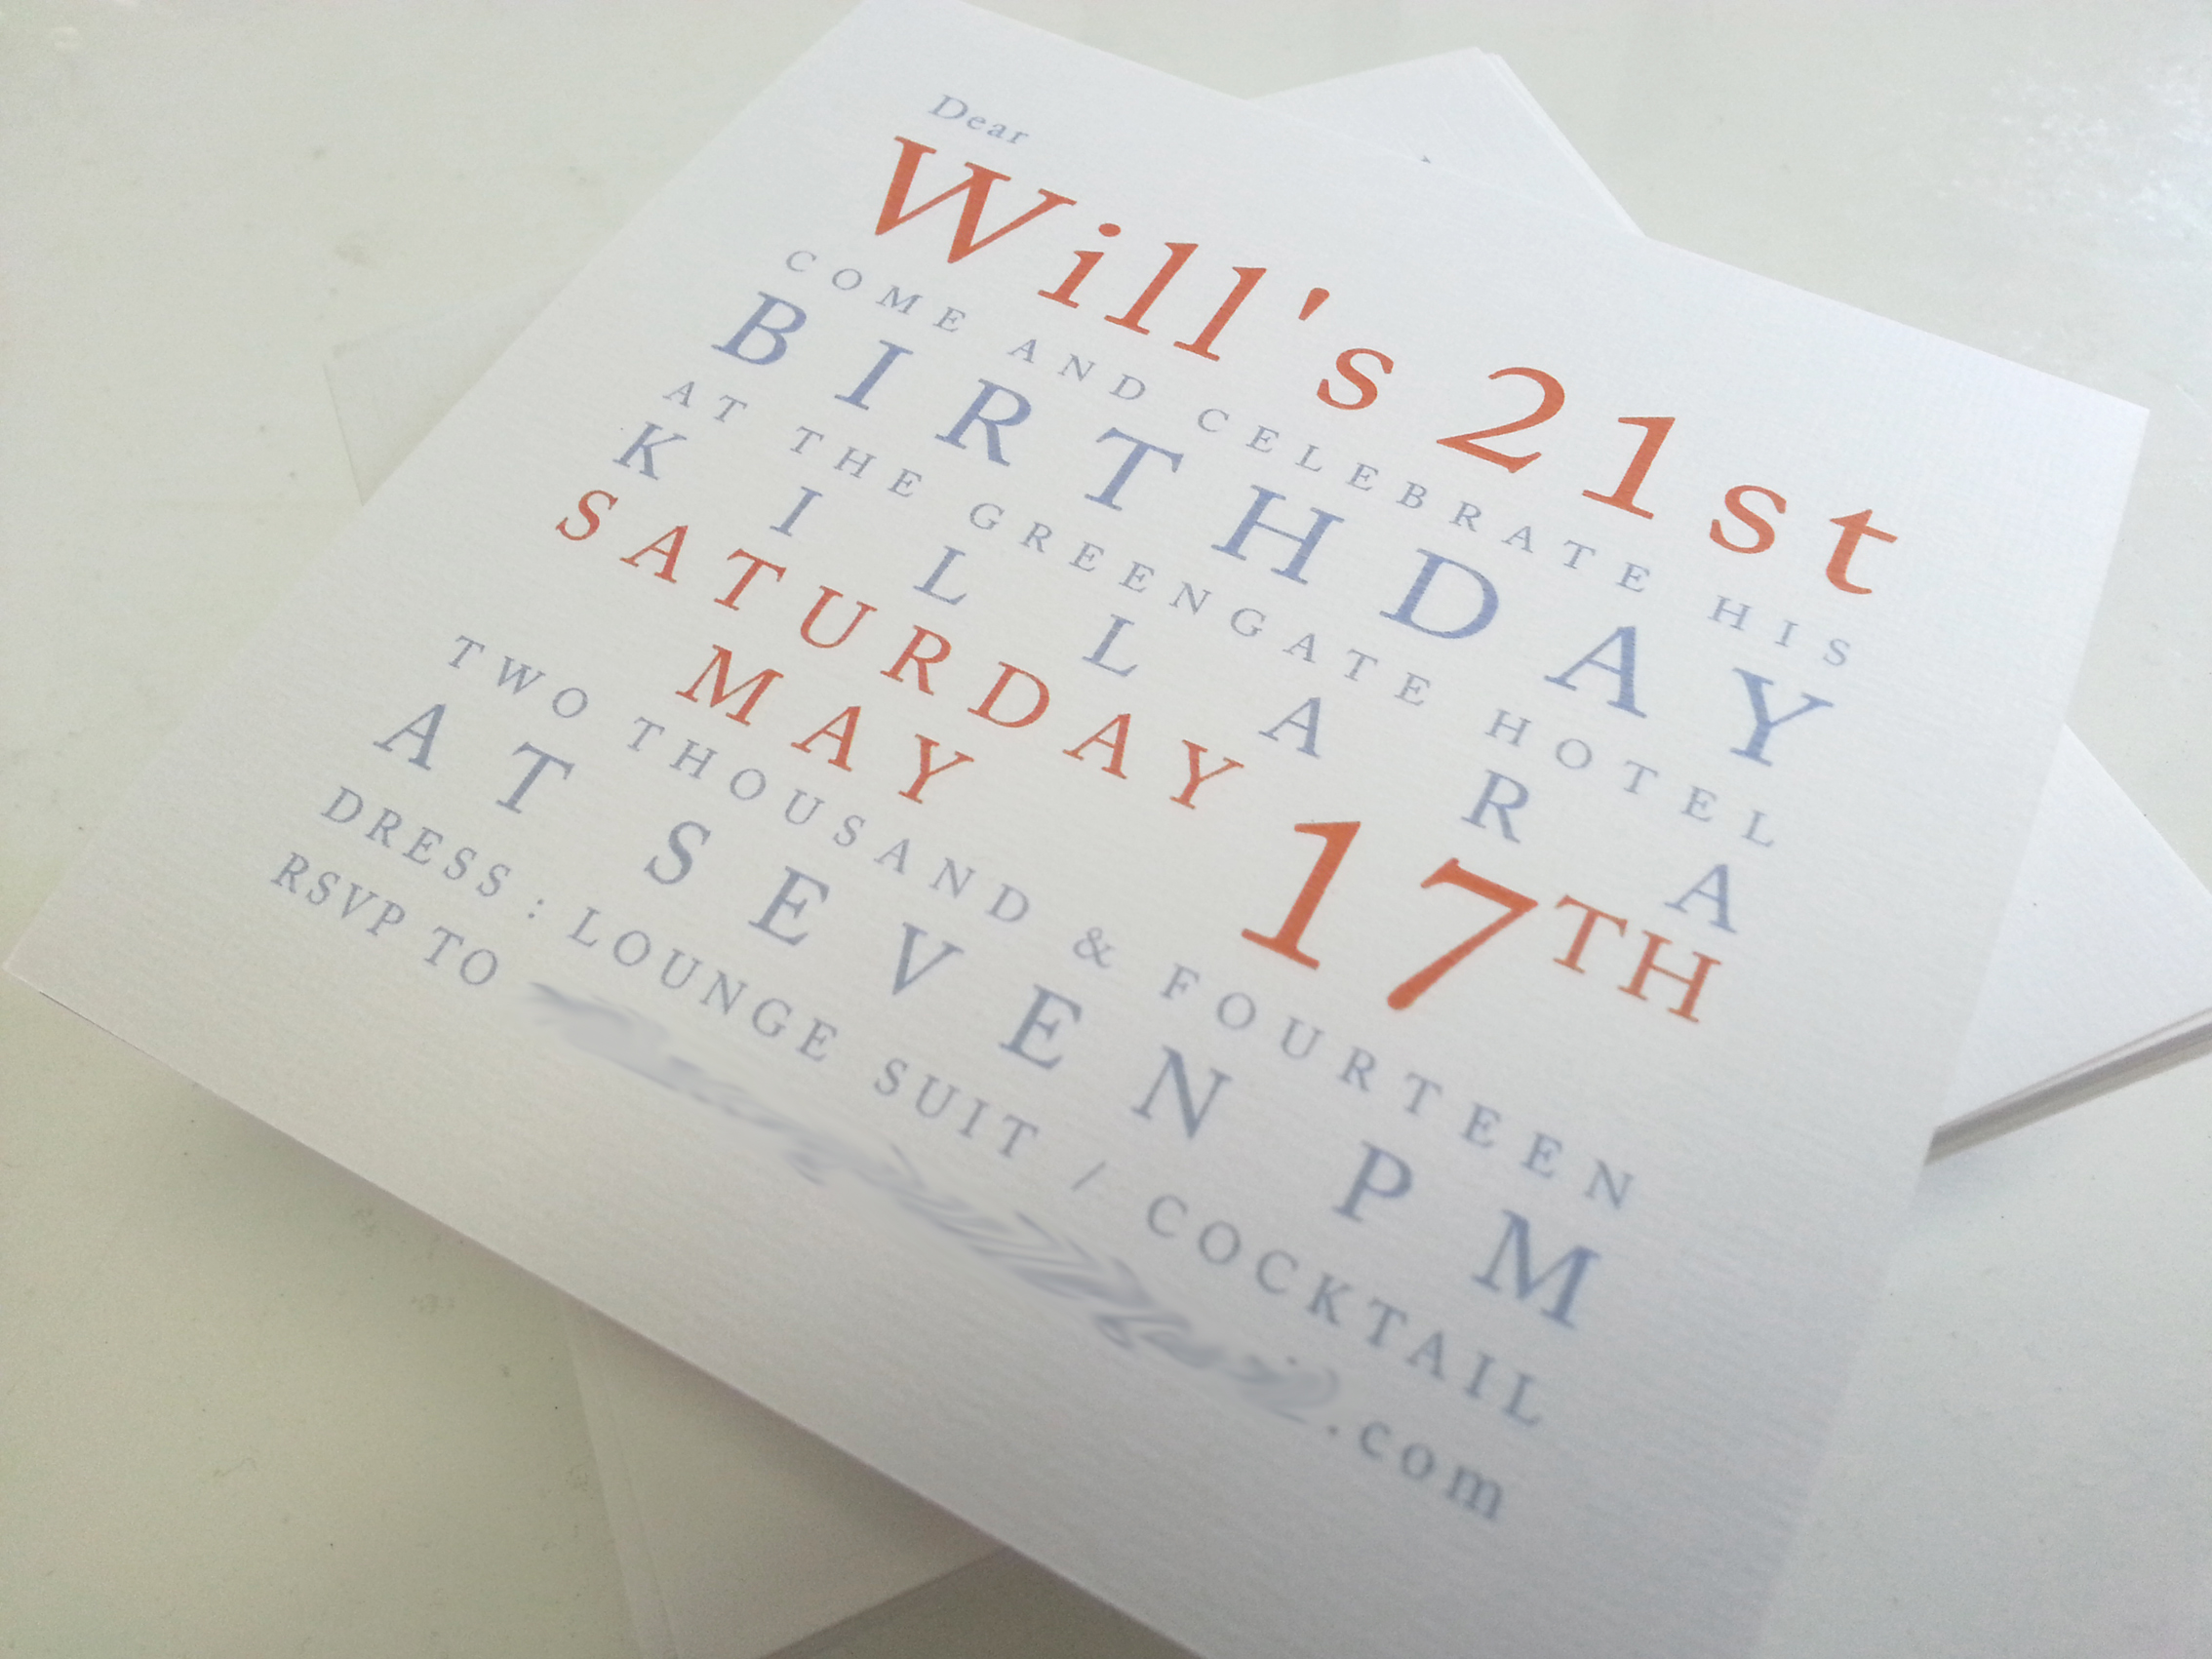 21st Birthday invitation Sydney.jpg